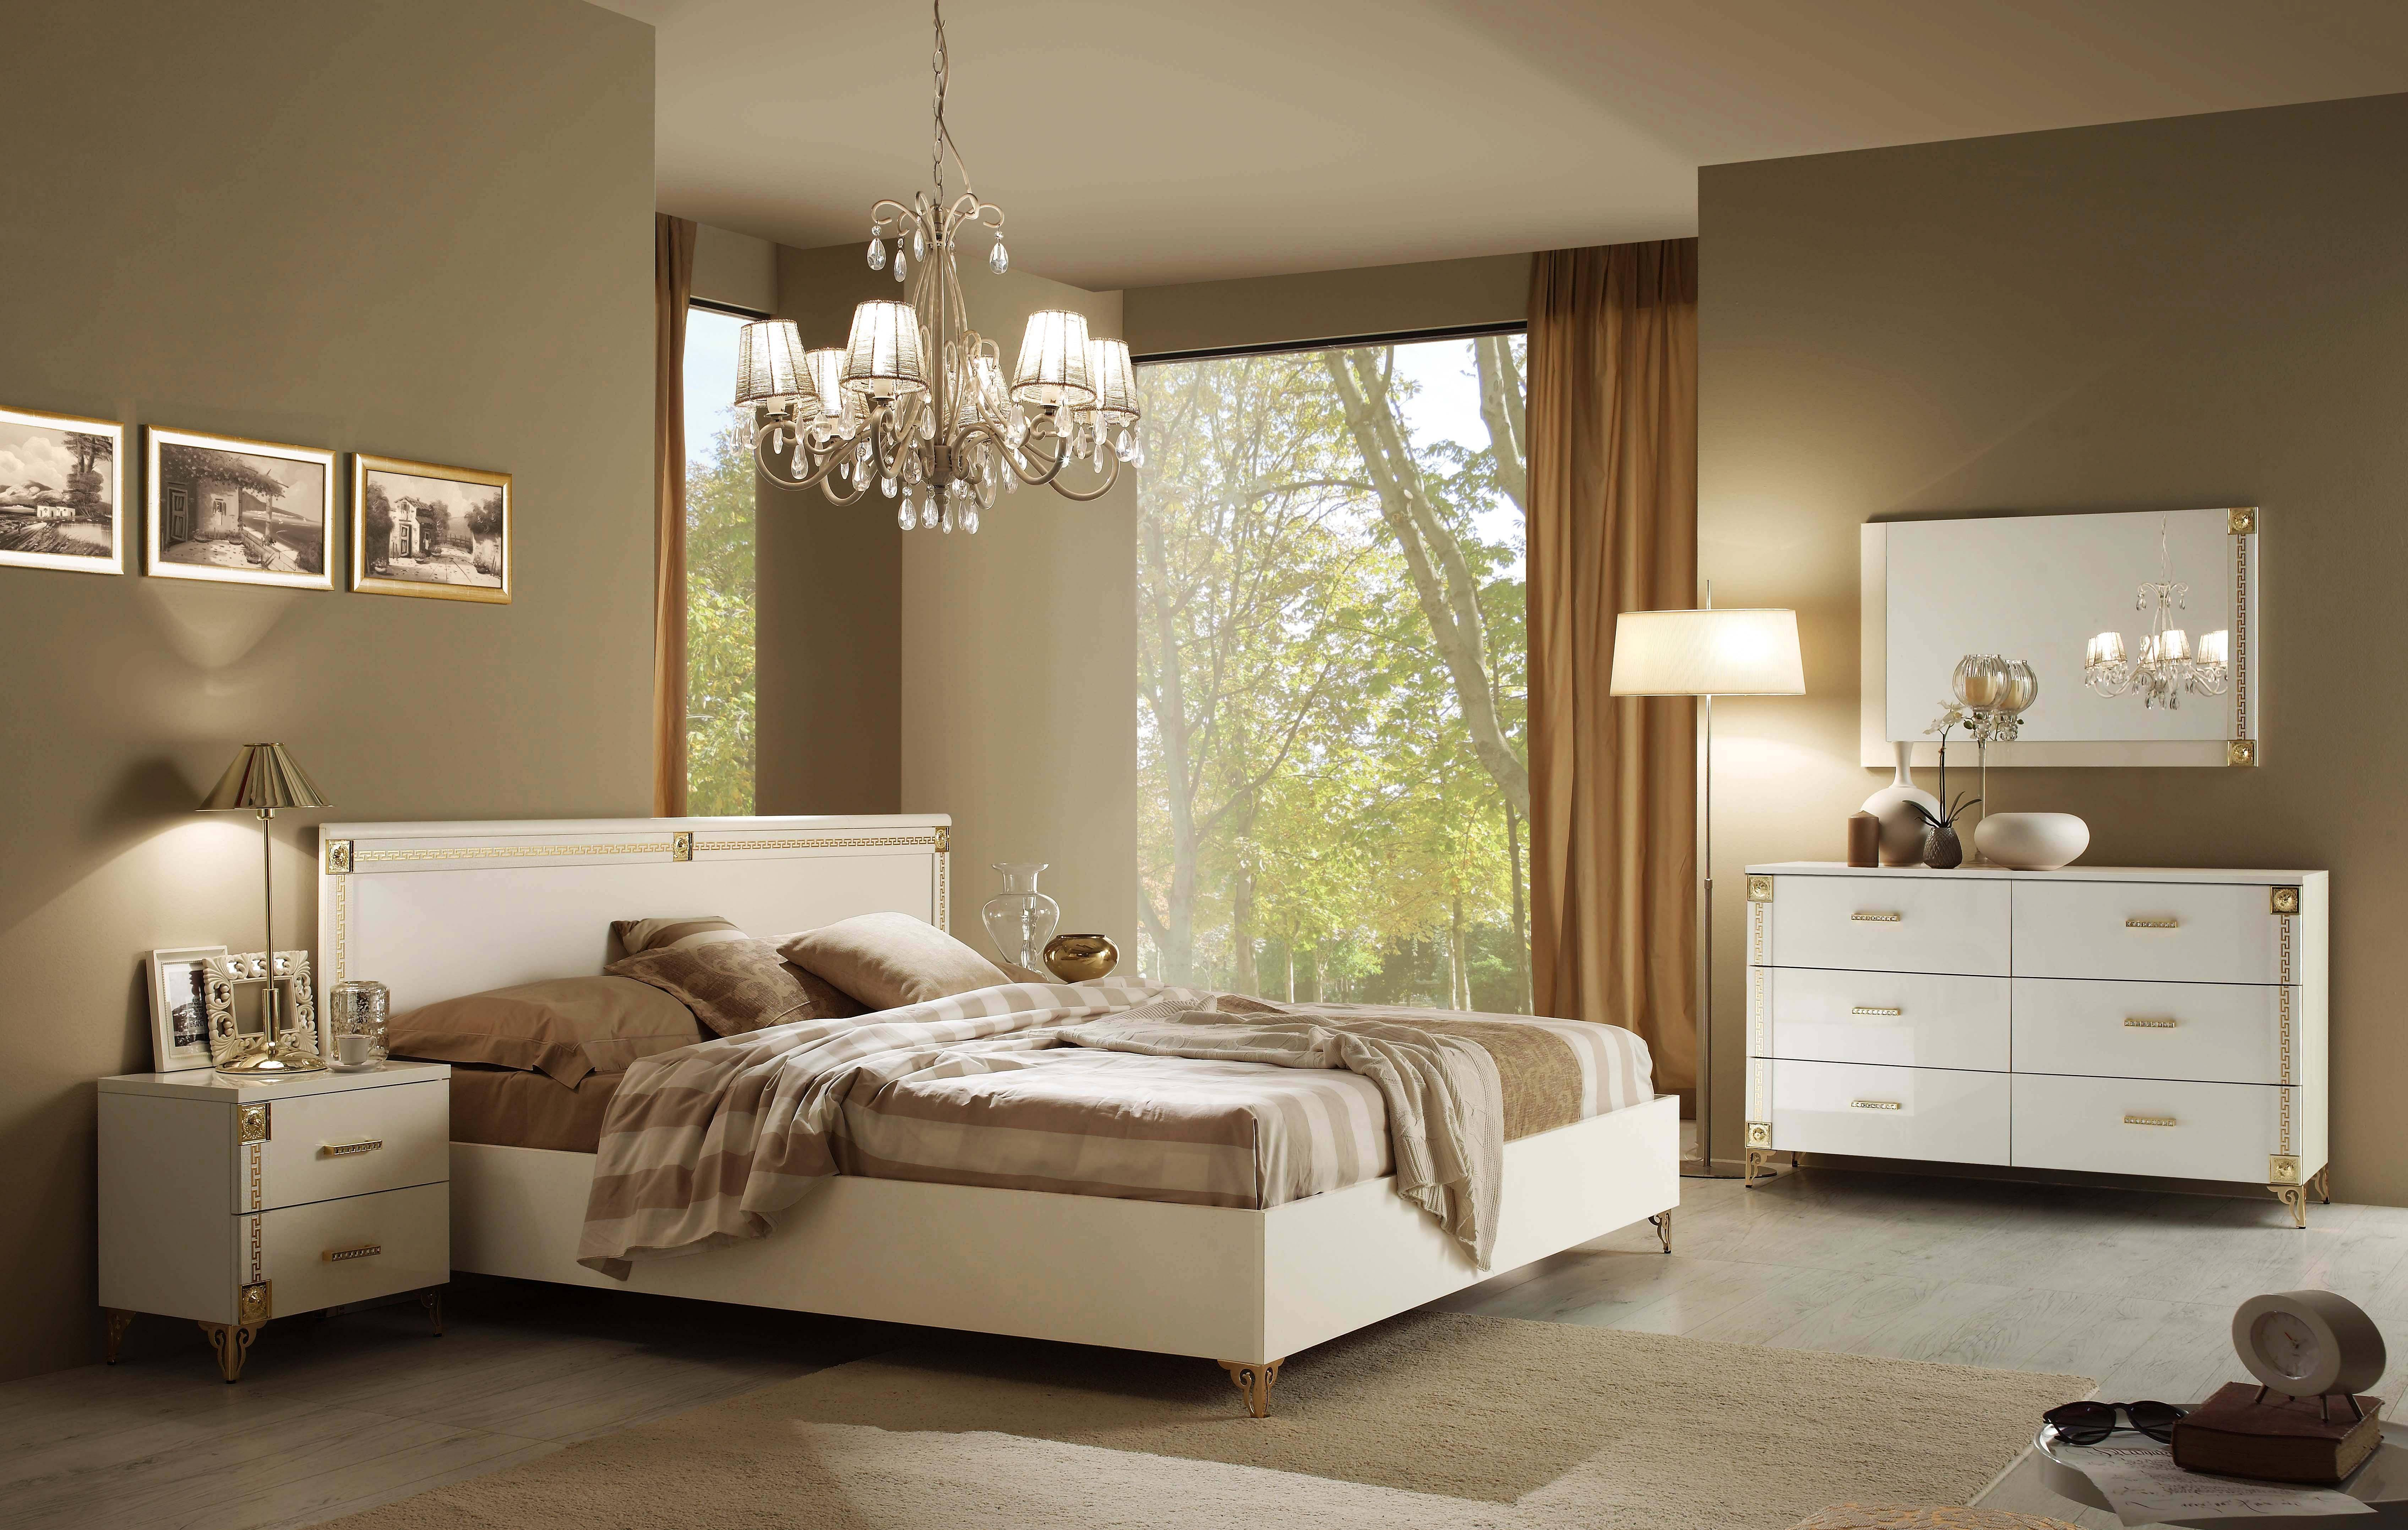 Made In Italy Leather Luxury Contemporary Furniture Set: ESF Venice Luxury White Gold Queen Bedroom Set 3Pcs